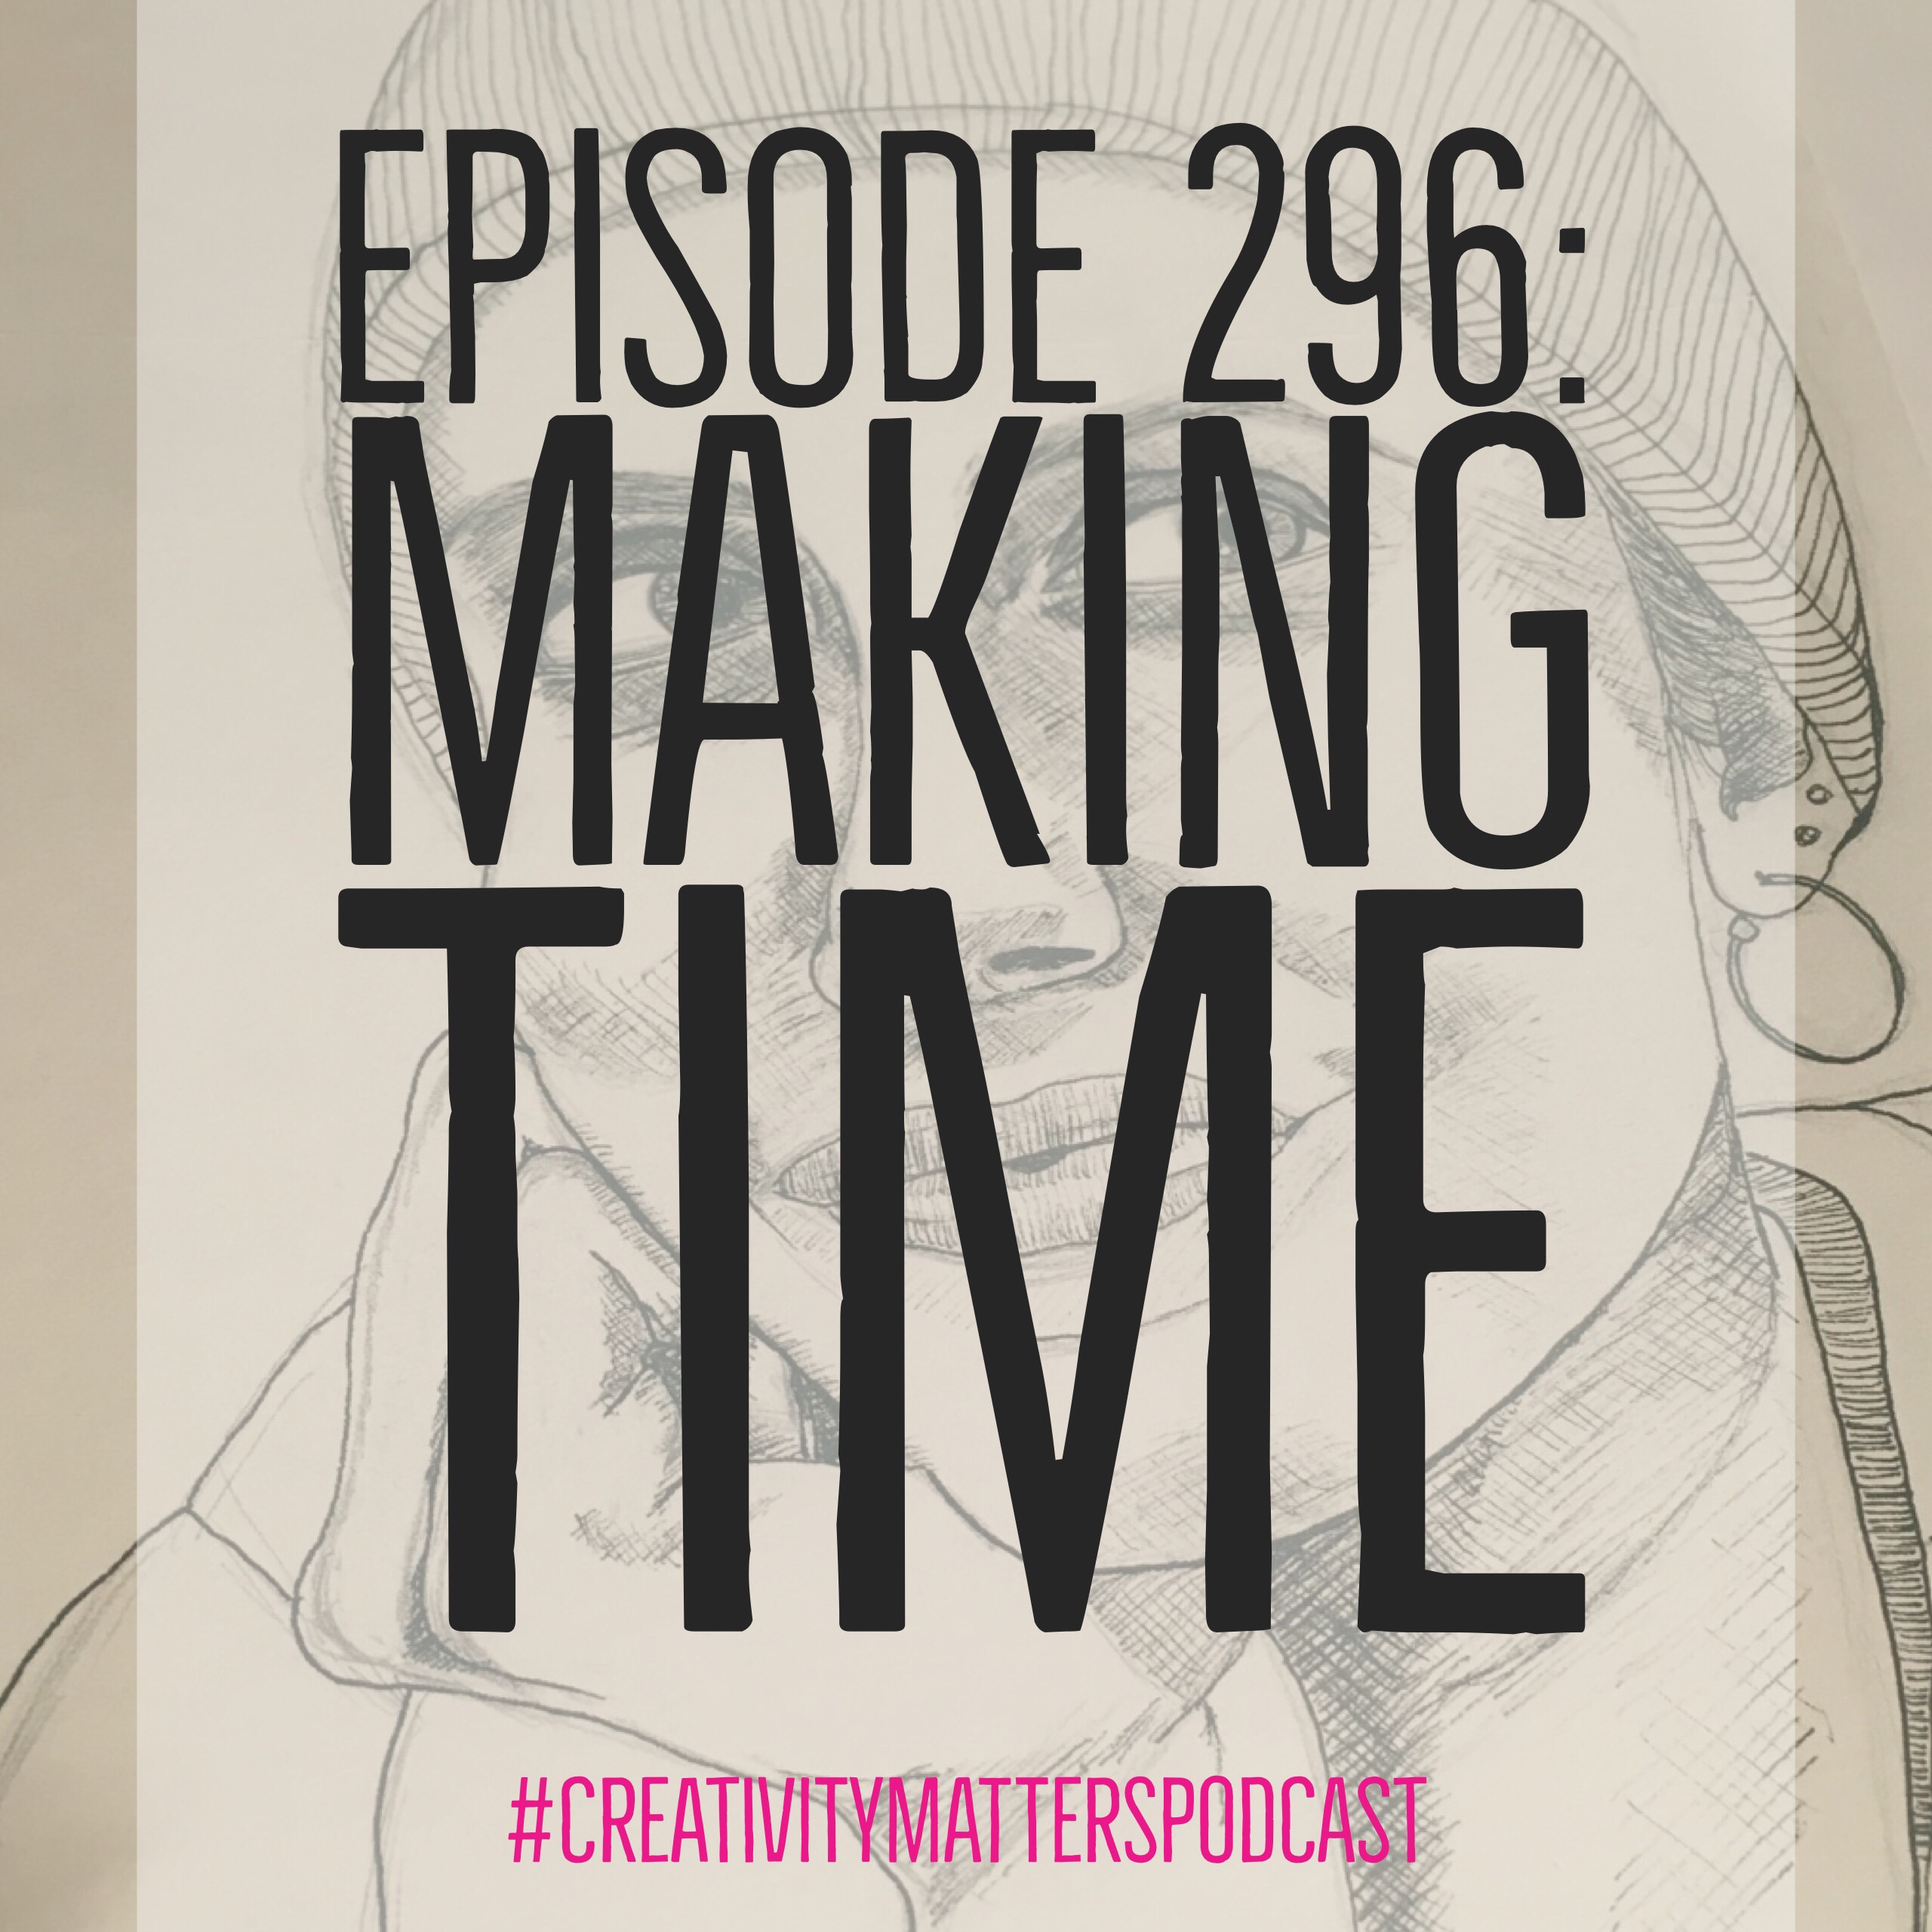 Episode 296: Making Time